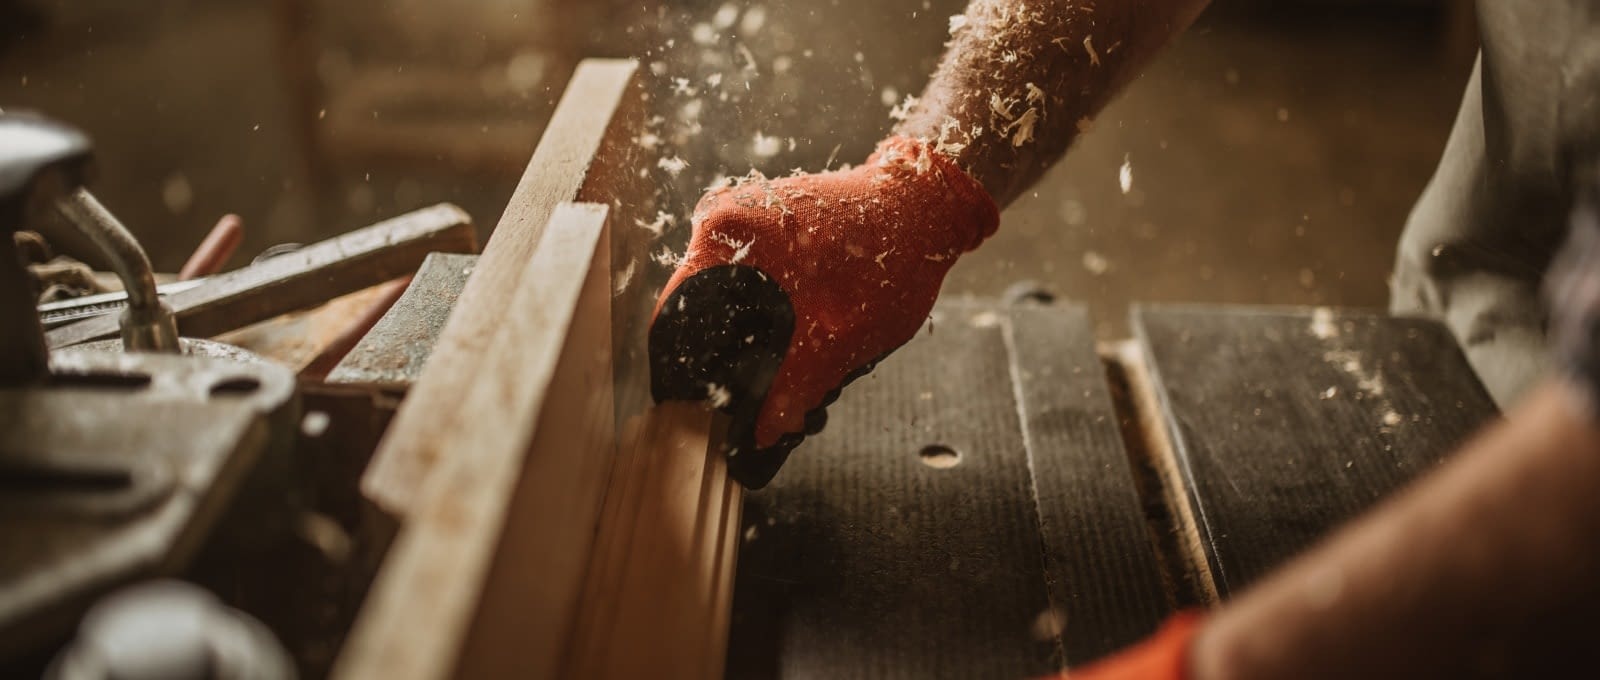 Woodworking - Close-up of a man pushing wood through a table saw